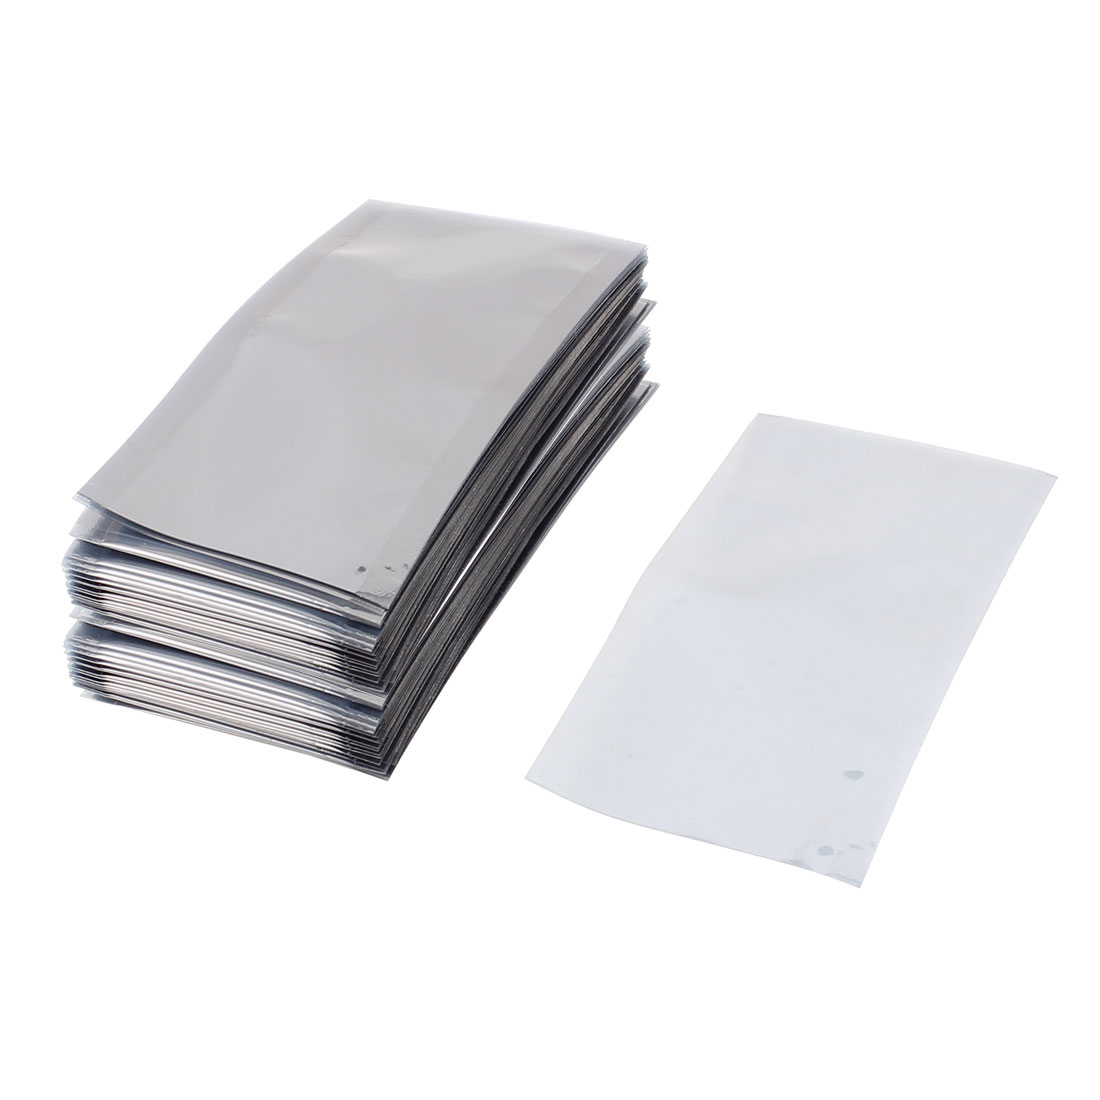 100 Pcs 50mm x 100mm Silver Tone Flat Open Top Anti Static Bag For Electronics